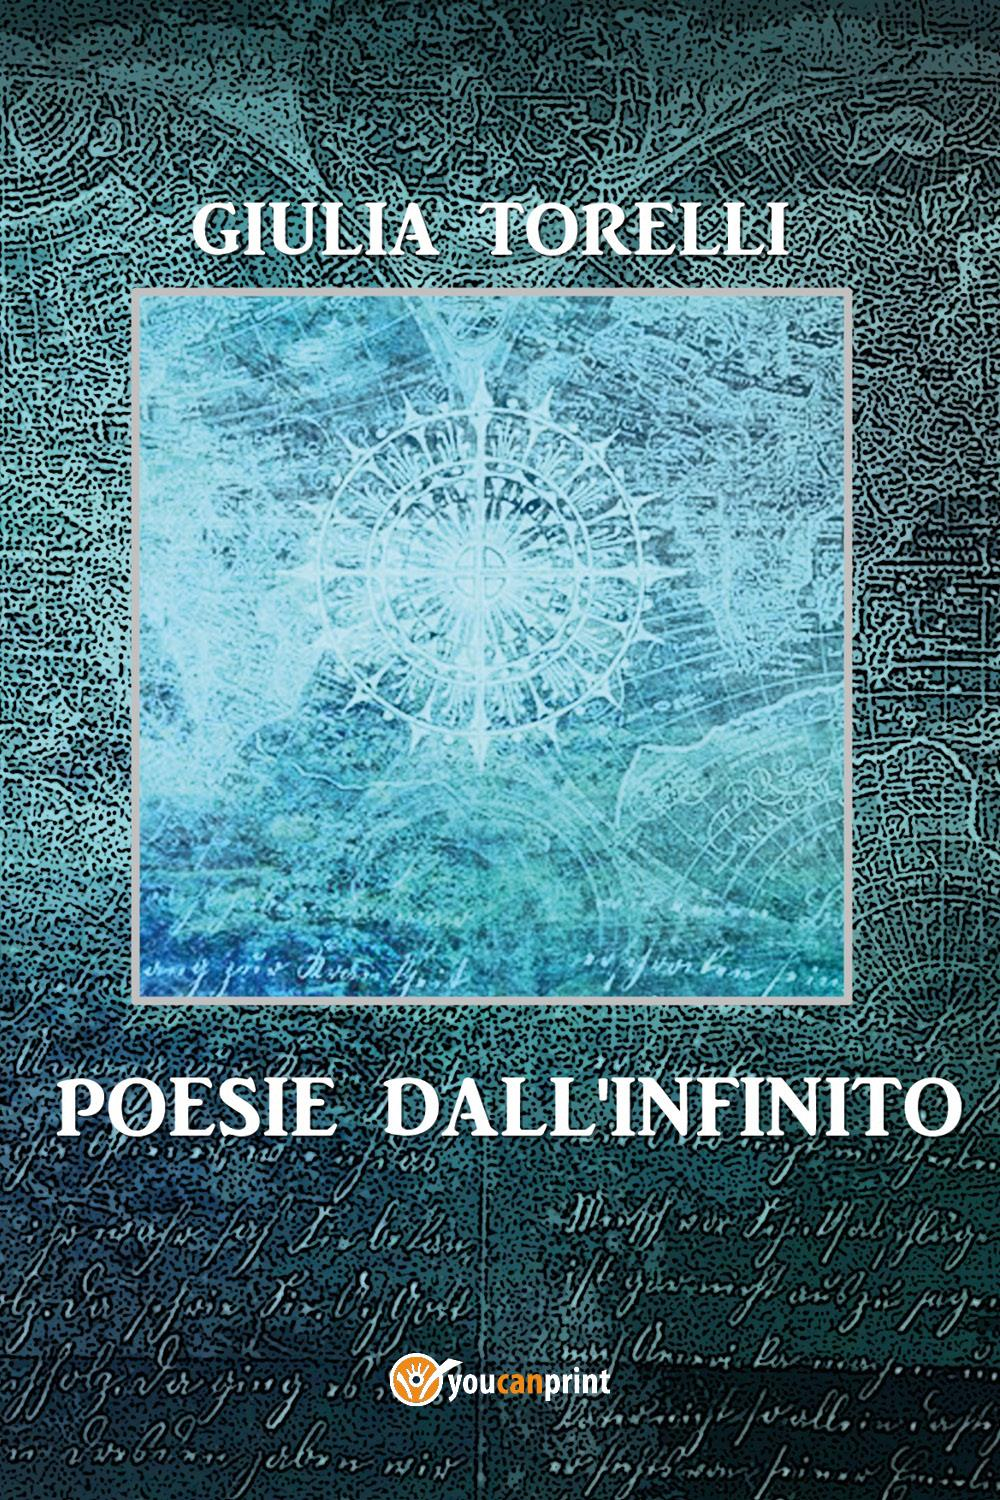 Poesie dall'infinito